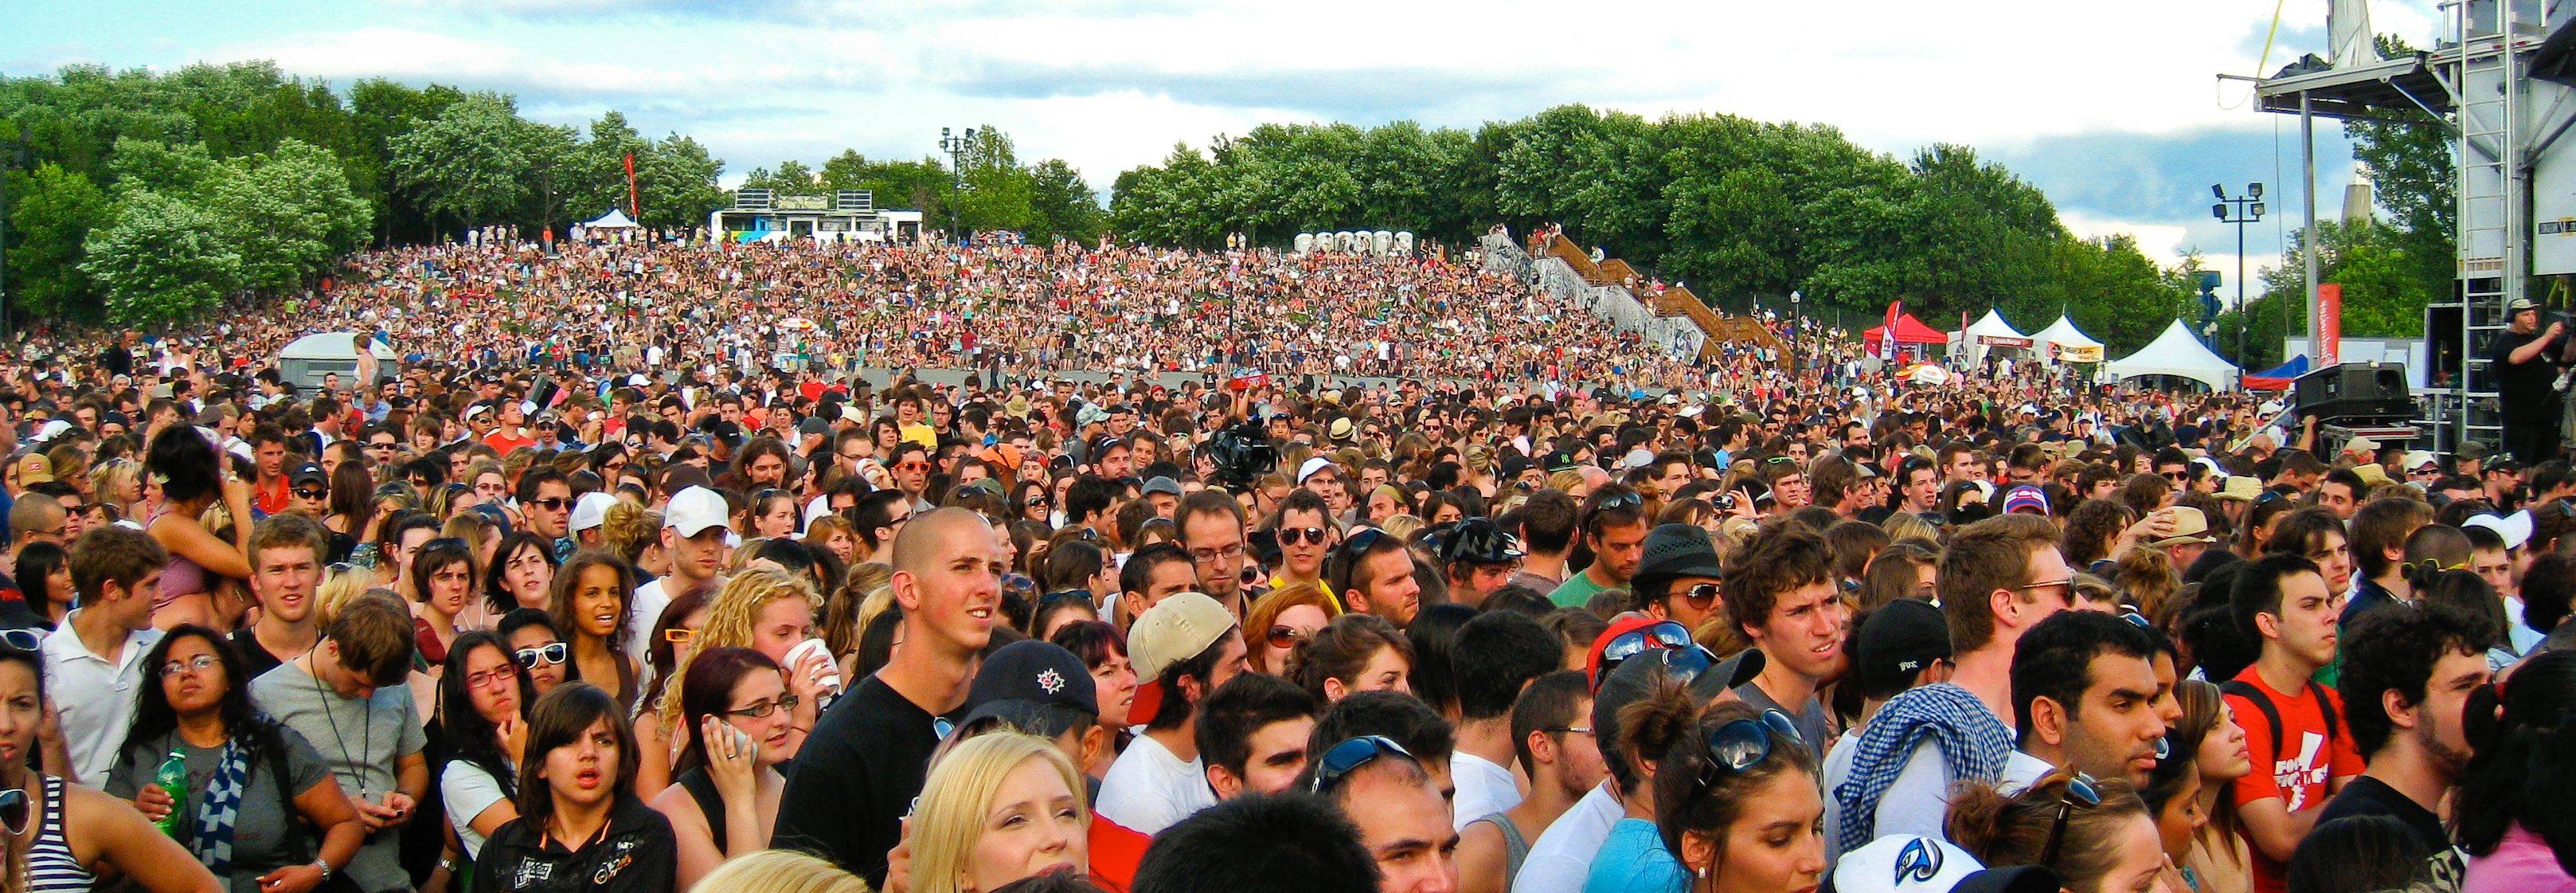 Concert Crowd (Osheaga 2009) - 30000 waiting for Coldplay ...